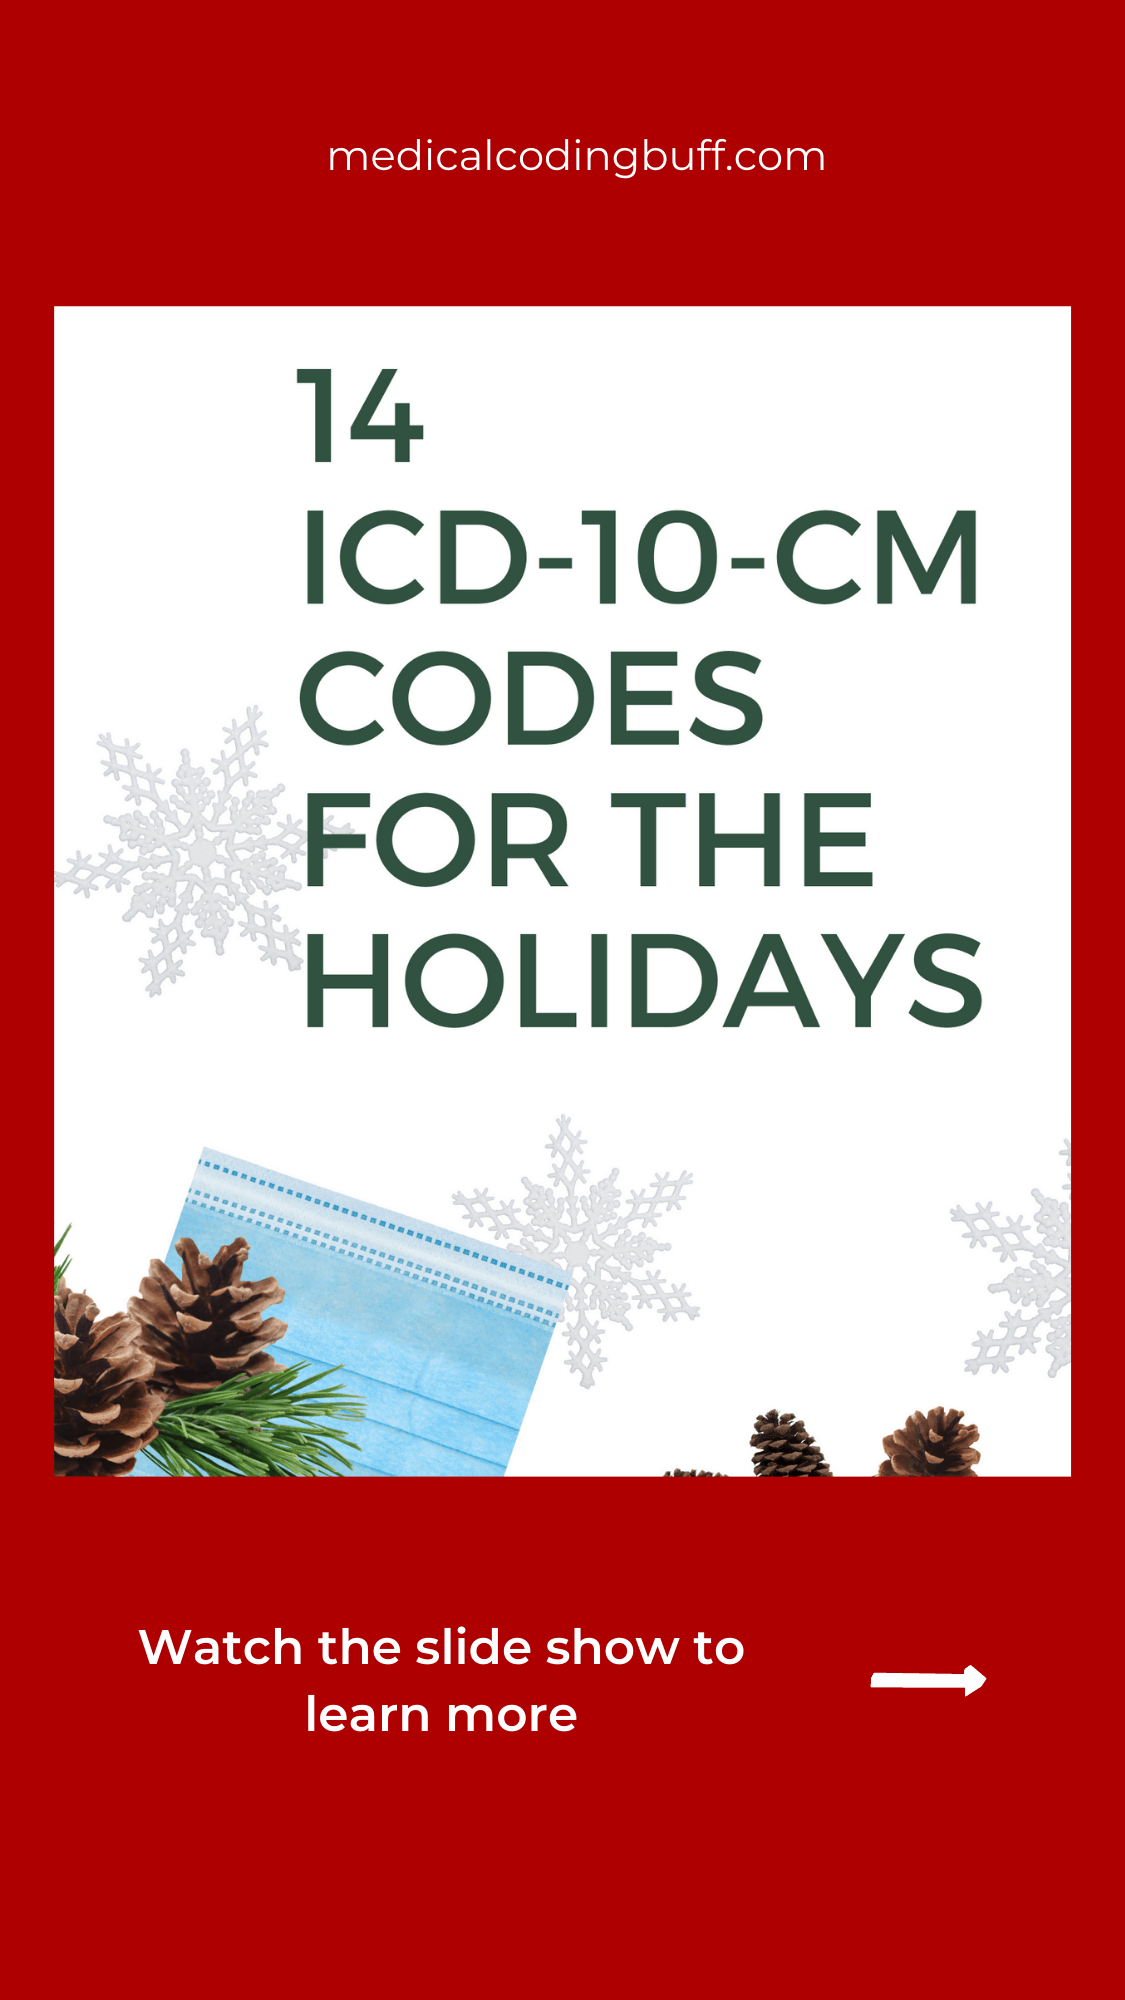 14 ICD-10-CM Codes for the Holiday Season